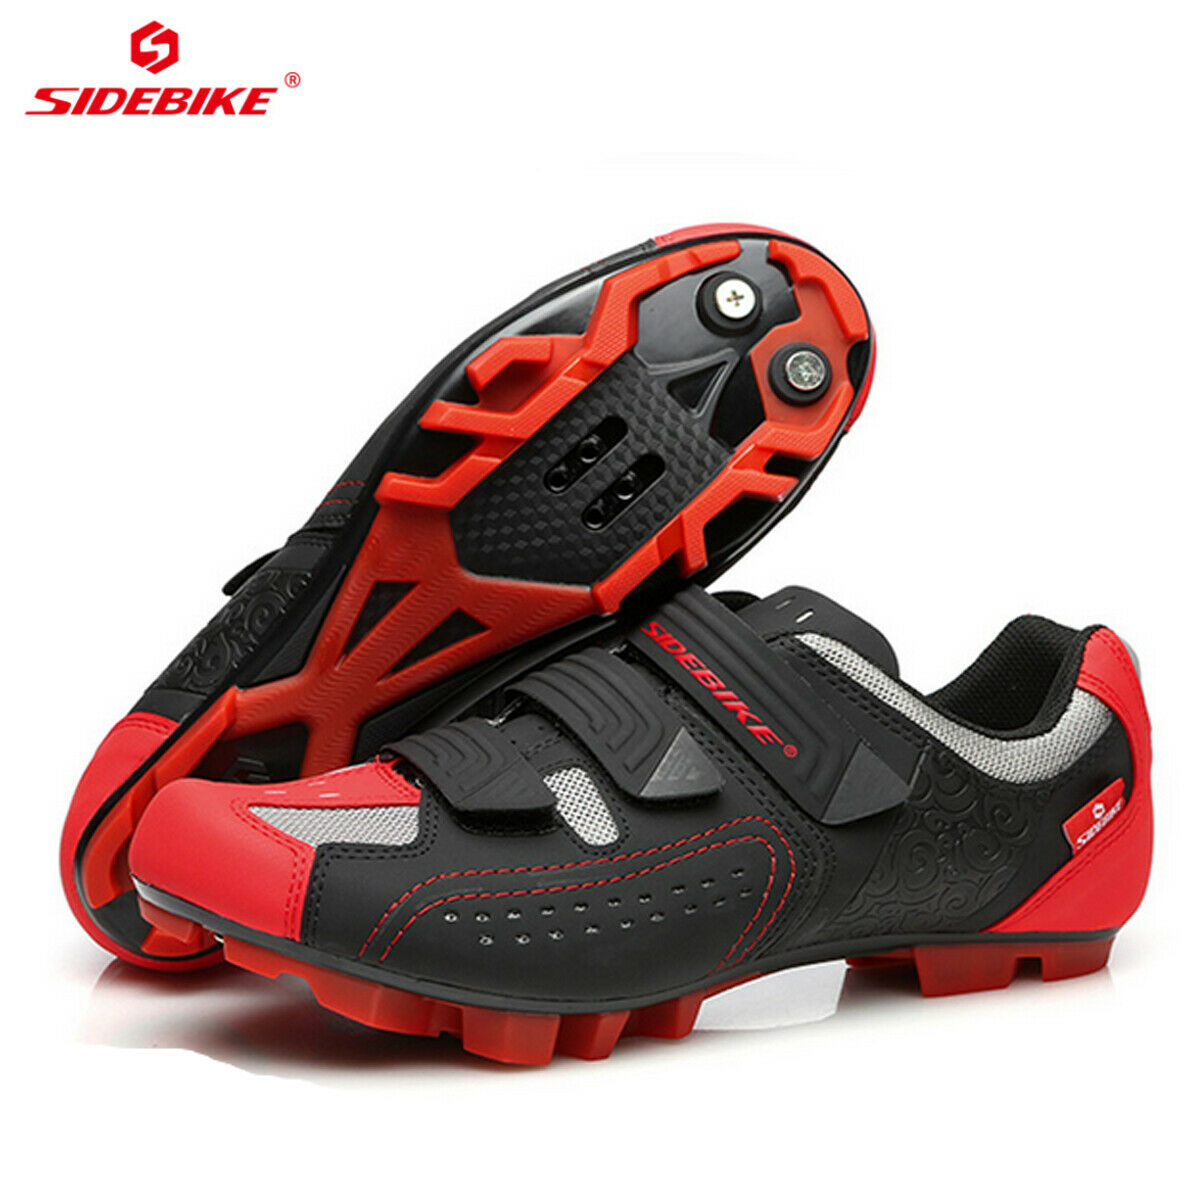 SIDEBIKE Mens MTB Mountain Bike Fitness  Bicycle Cycling shoes for Shimano SPD  online retailers